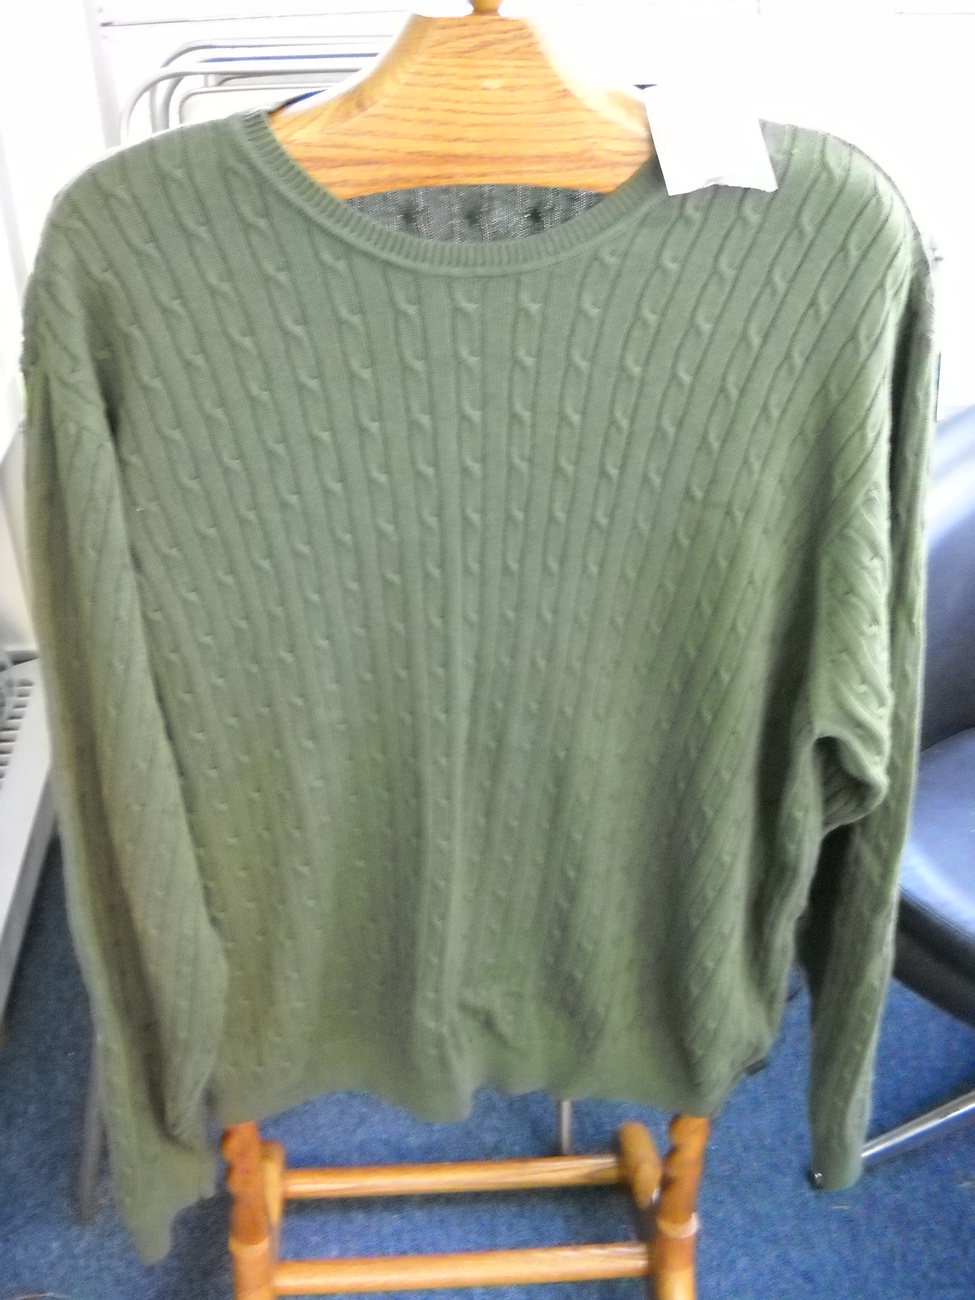 Izod Cabled Cotton Sweater XXL Long Sleeve Green New Unworn with Tag